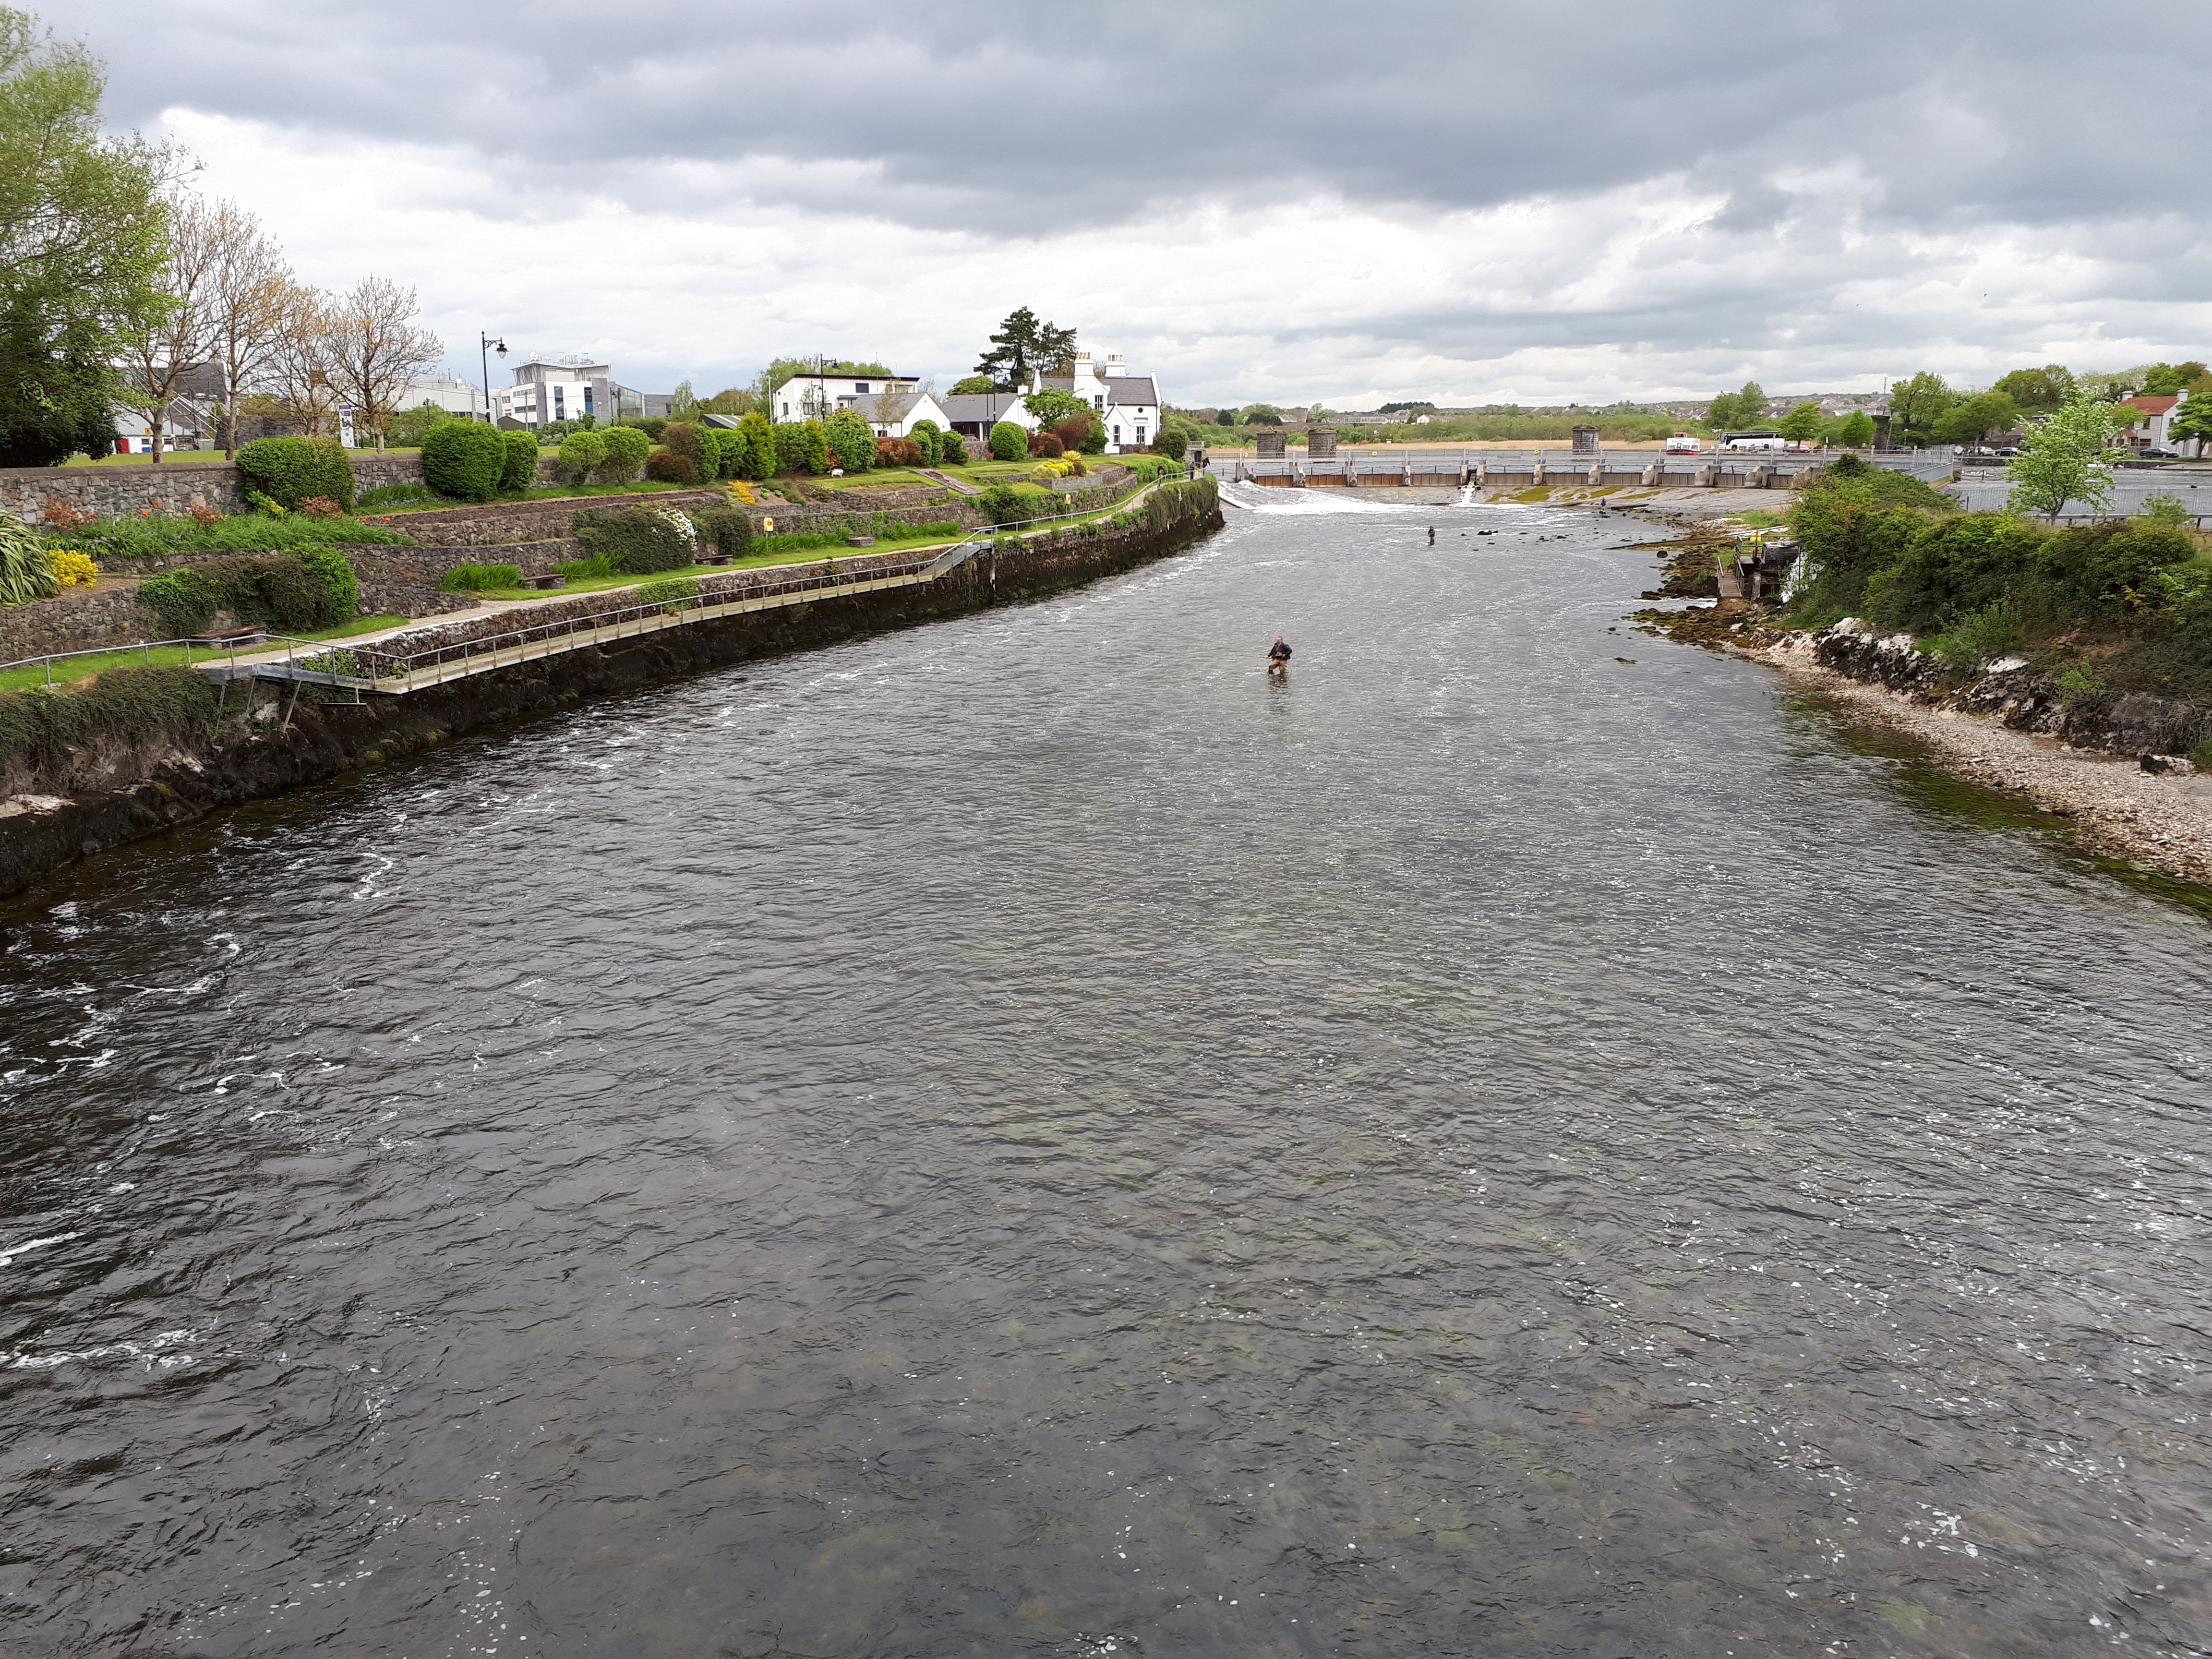 The Galway Weir